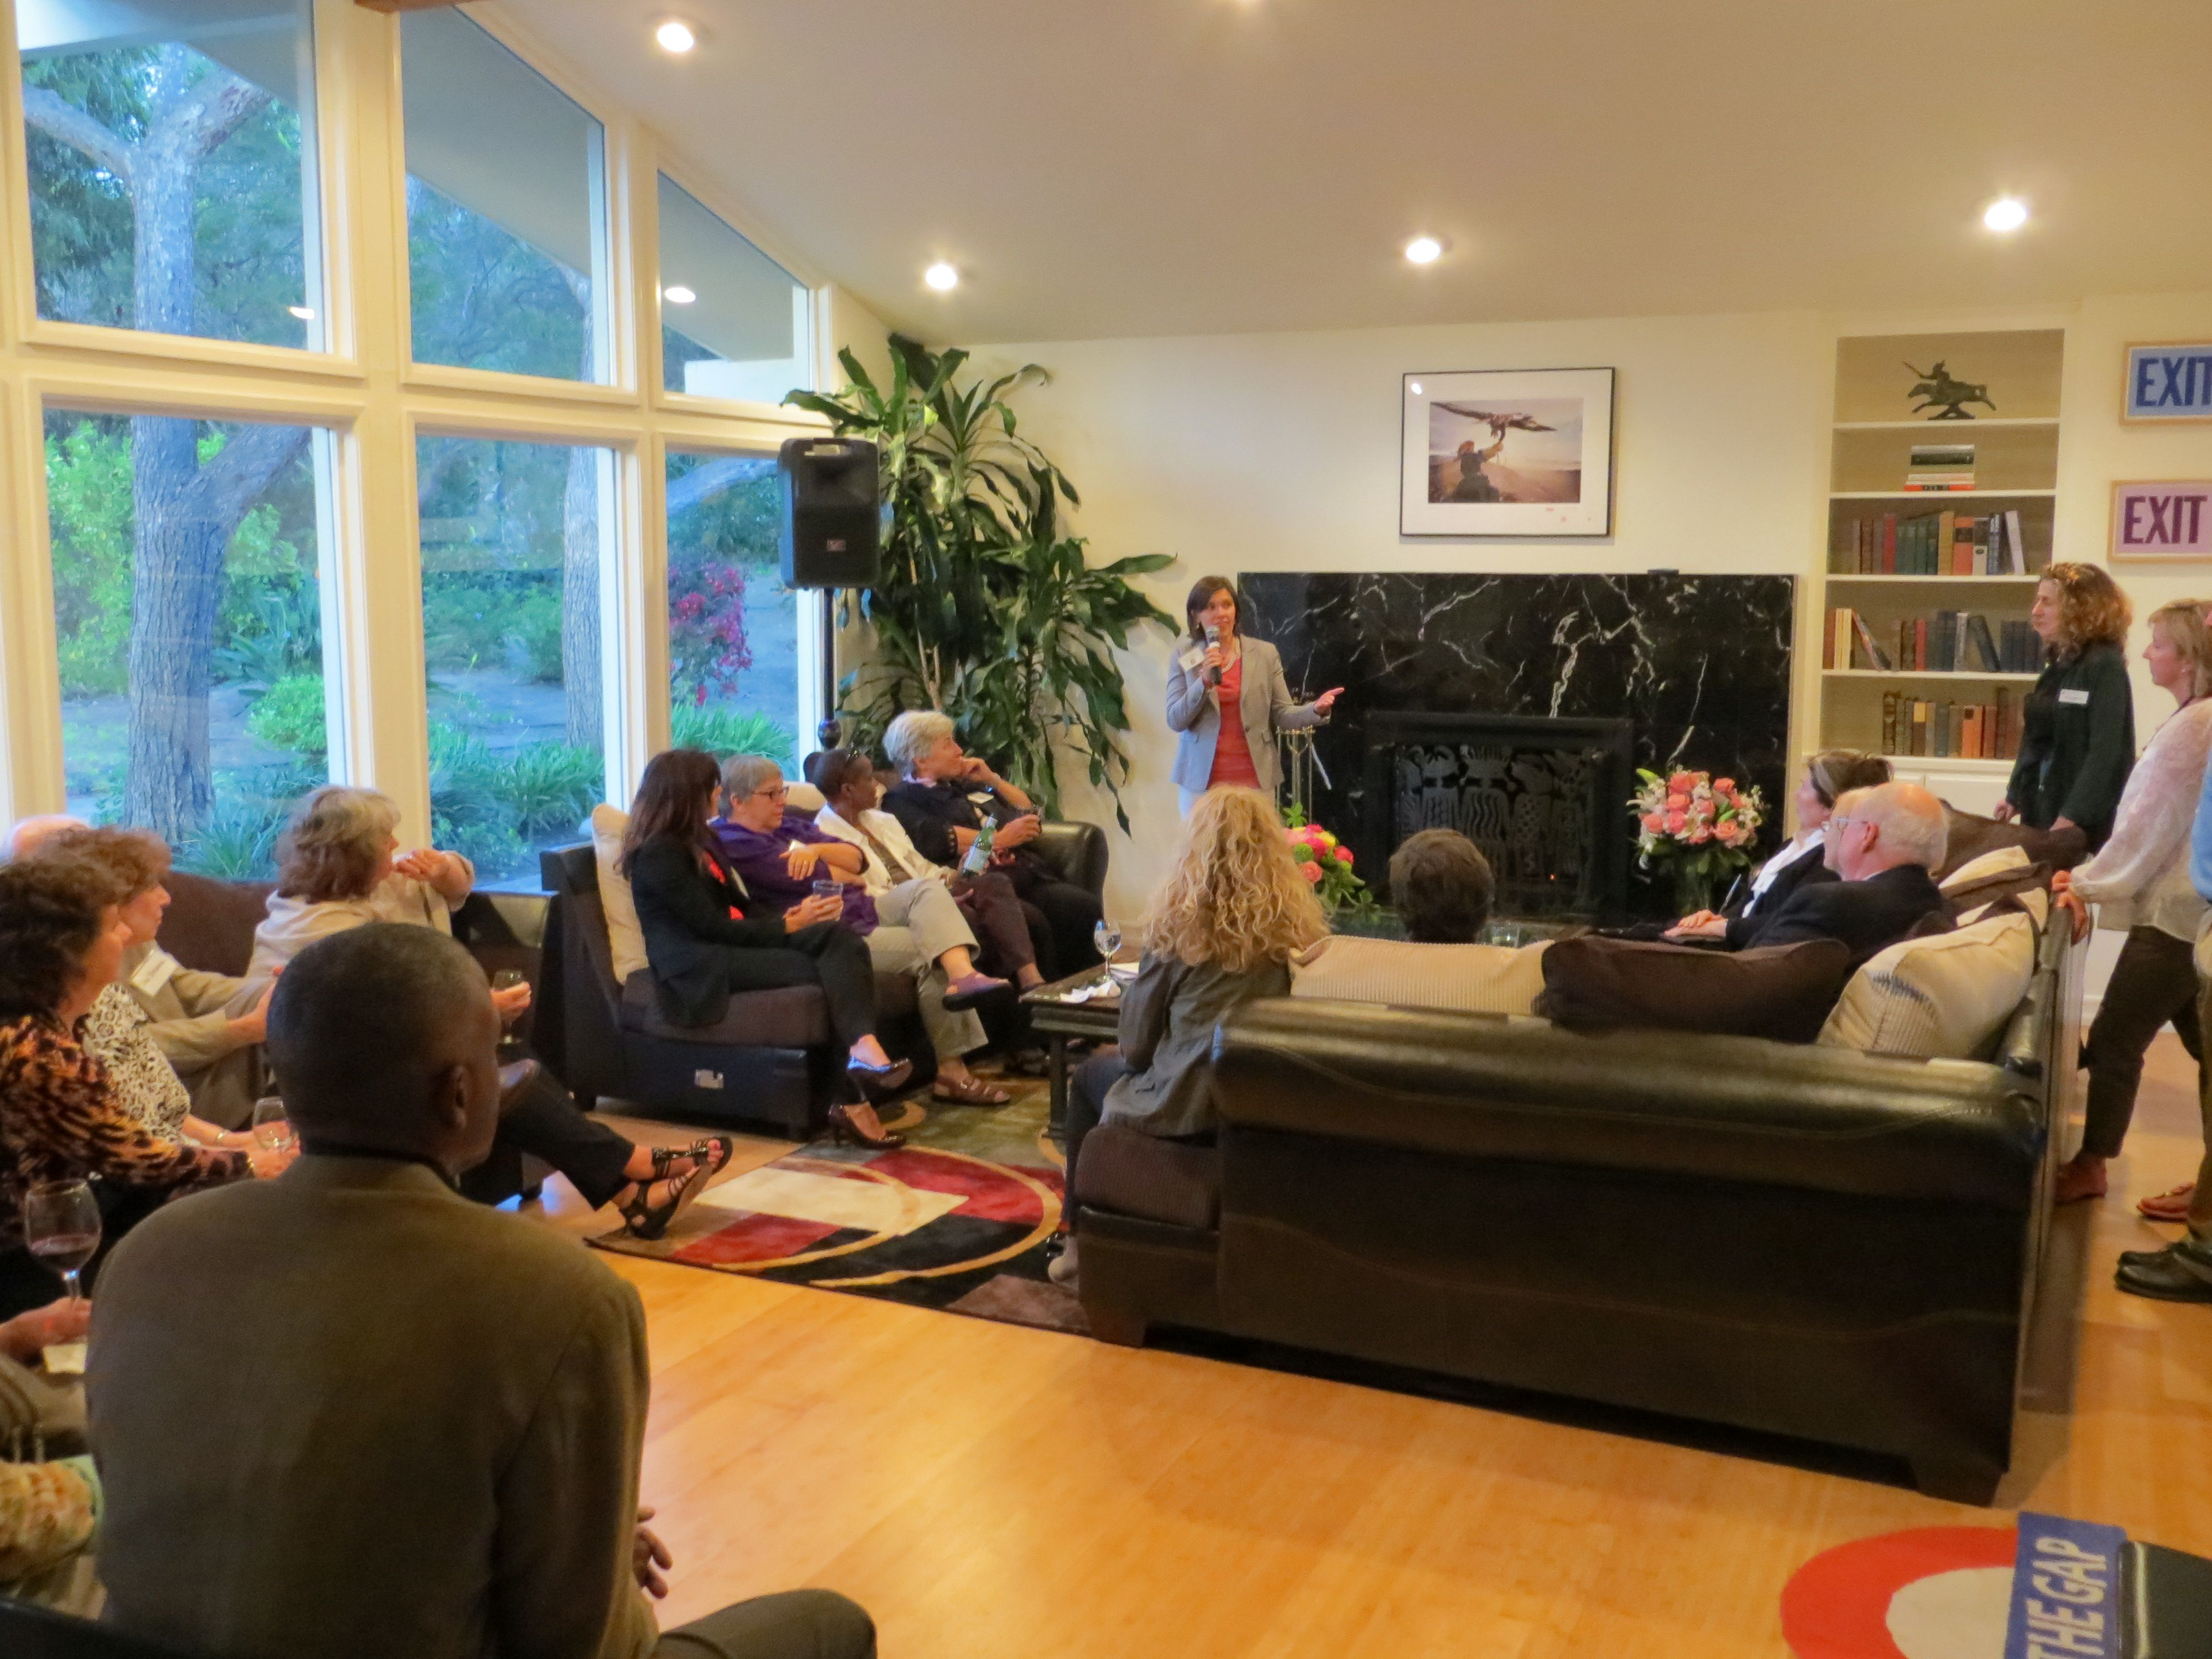 Nonprofit leadership events held at the mccune house in